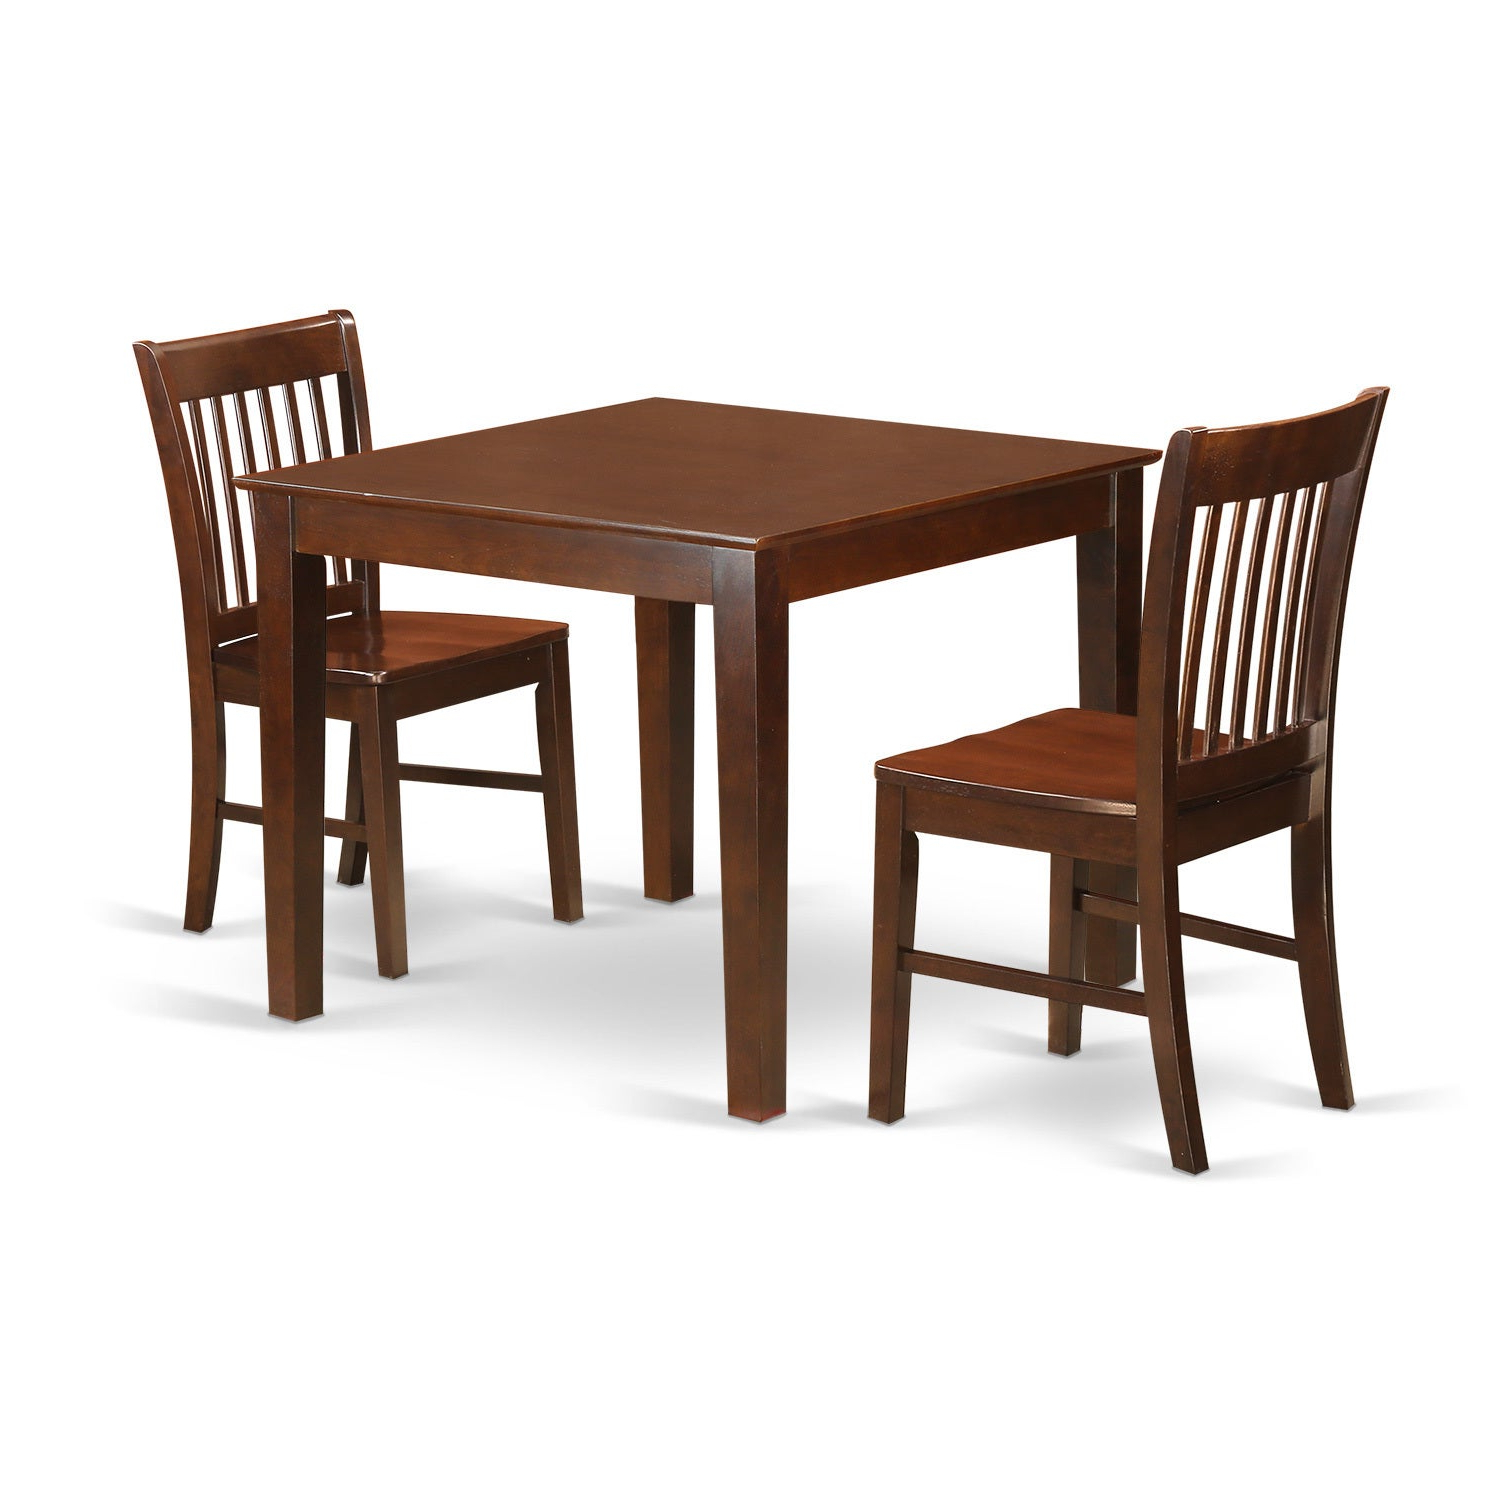 Bate Red Retro 3 Piece Dining Sets In Popular Buy 3 Piece Sets Kitchen & Dining Room Sets Online At Overstock (View 8 of 25)